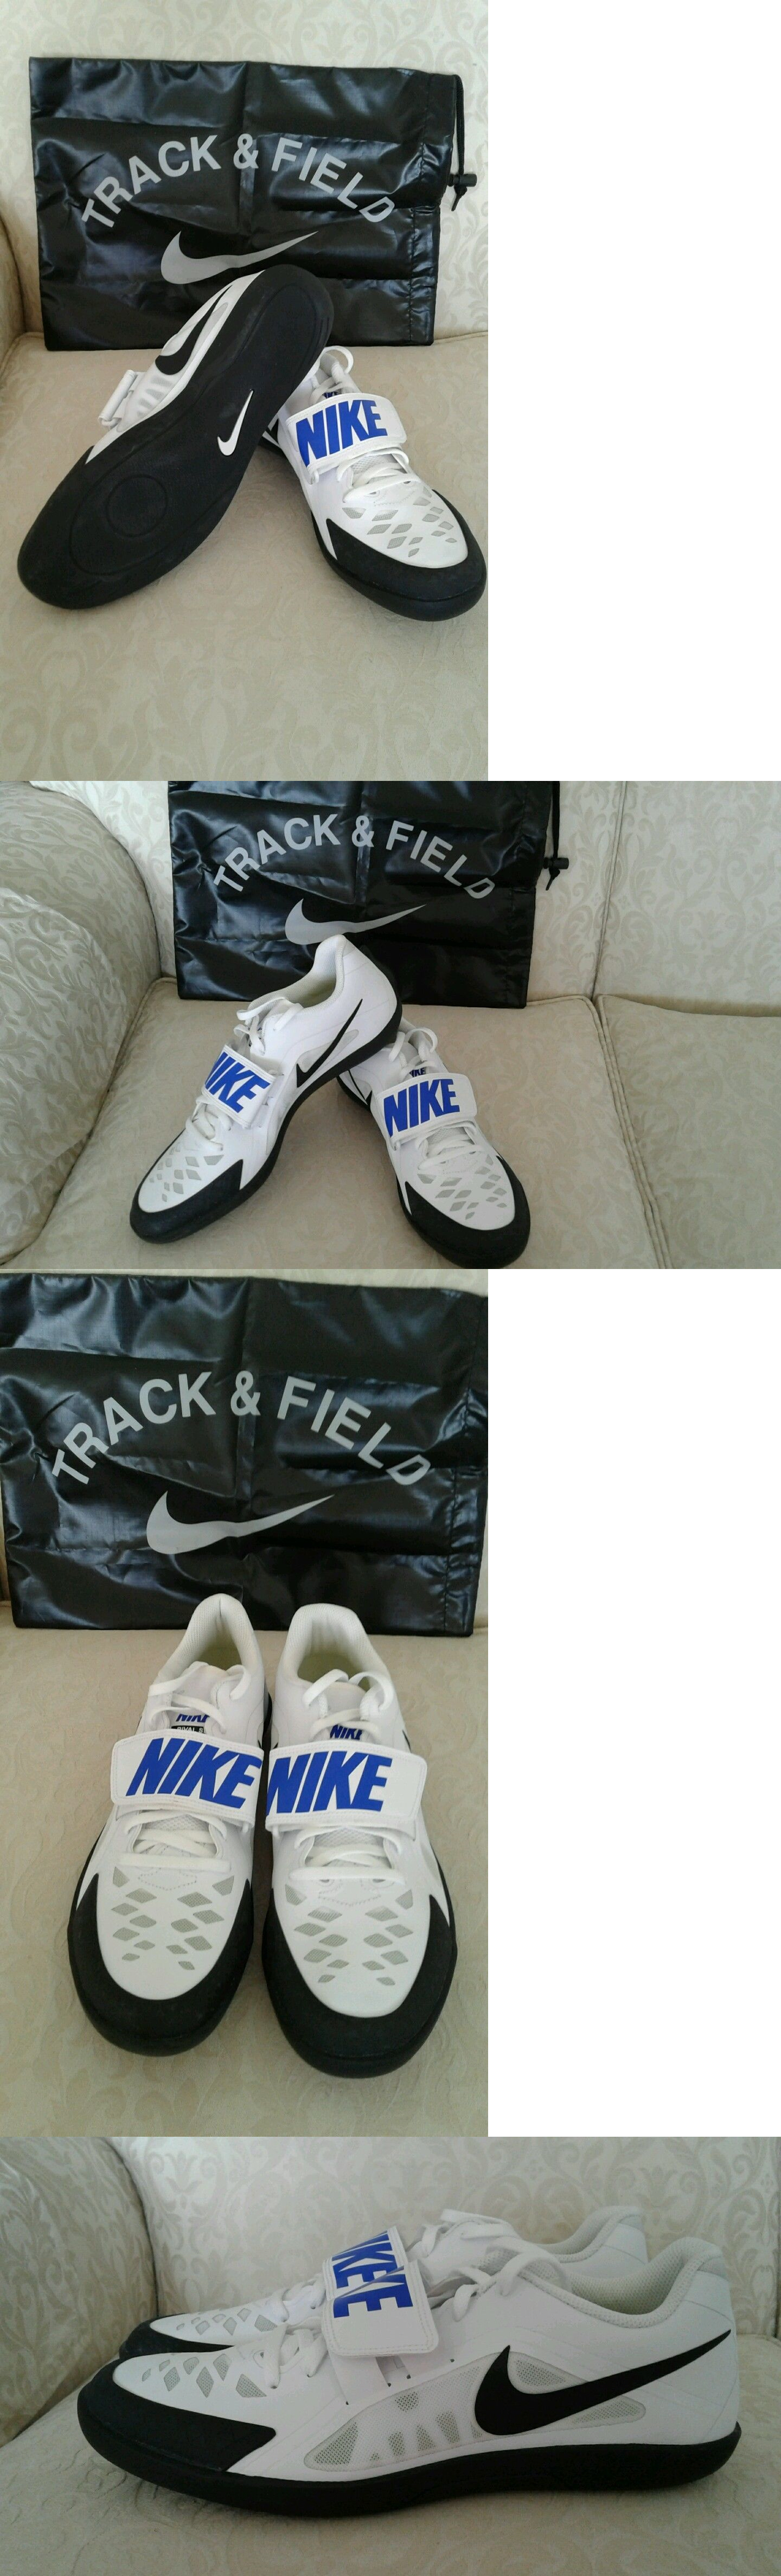 Track and Field 106981: Nike Zoom Rival Sd 2 Shot Put Discus Track Shoe  685134